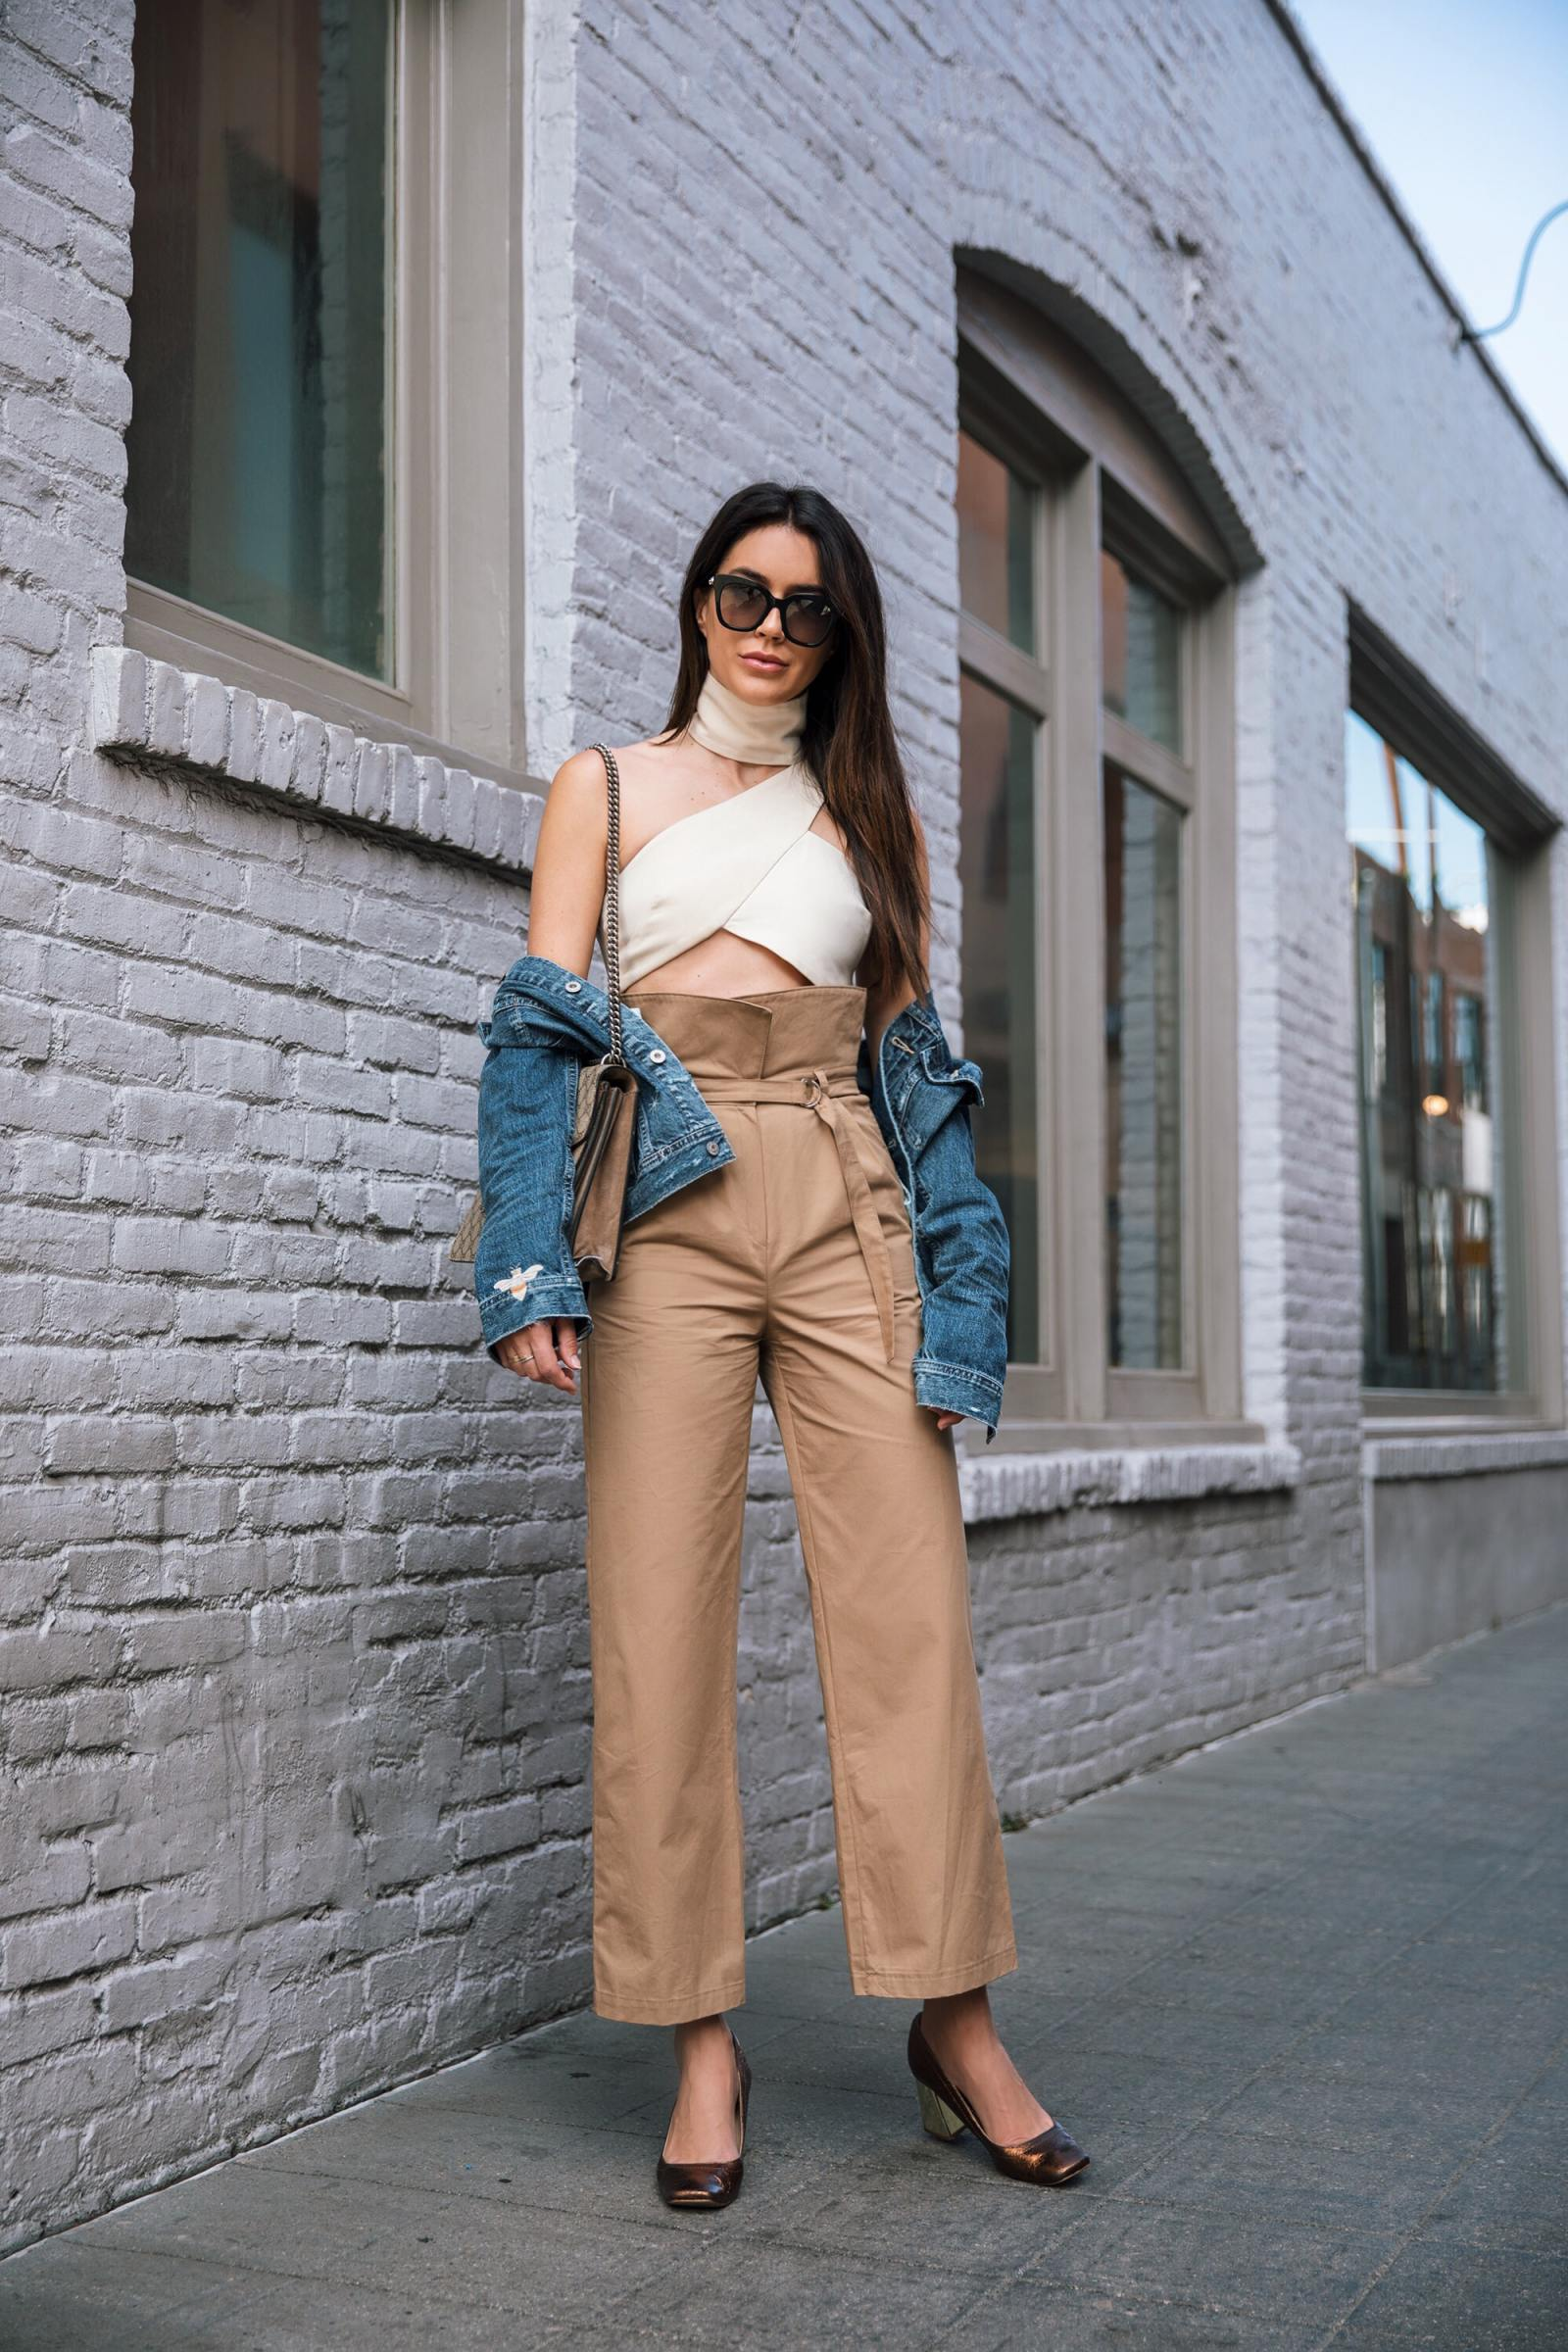 vivian-chan-crop-top-brittany-xavier-thrifts-and-threads